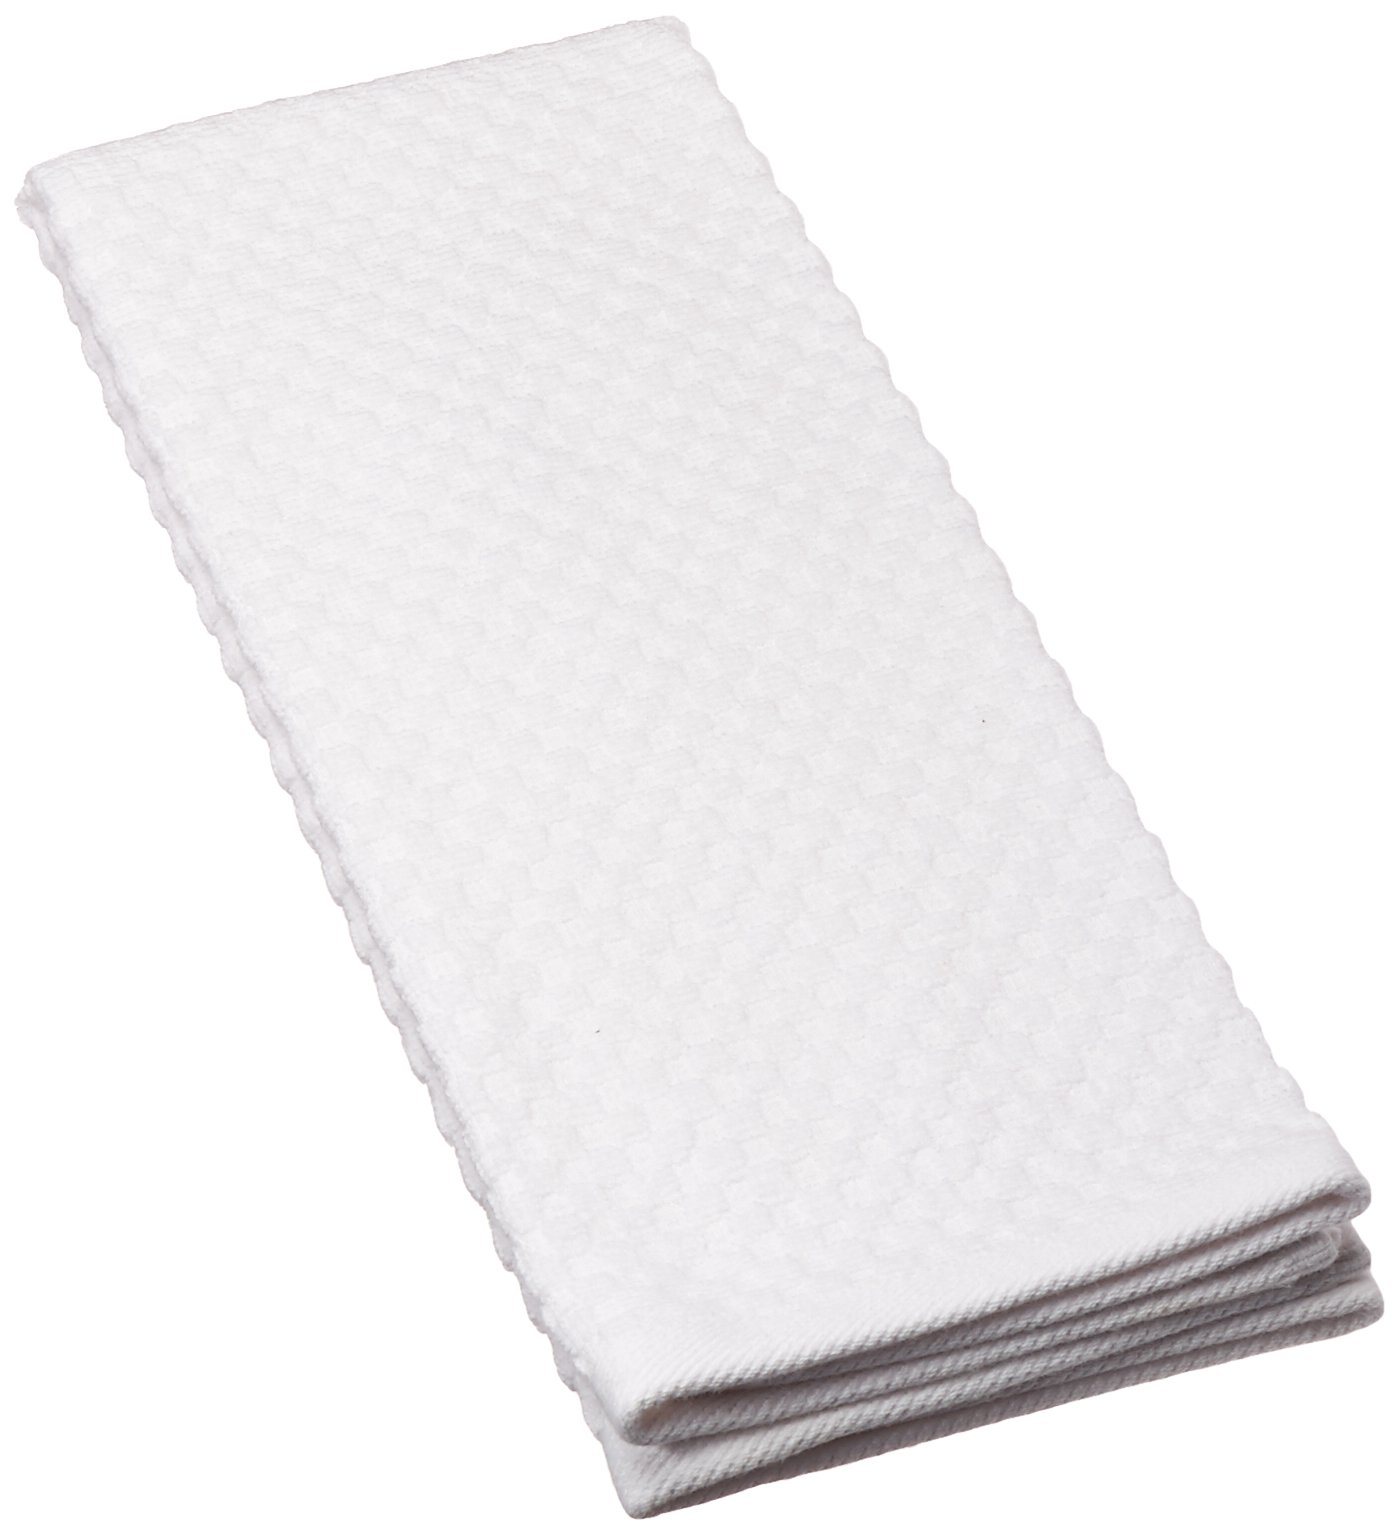 White Kitchen Towel: 8 Pack White EuroCafe Waffle Weave Terry